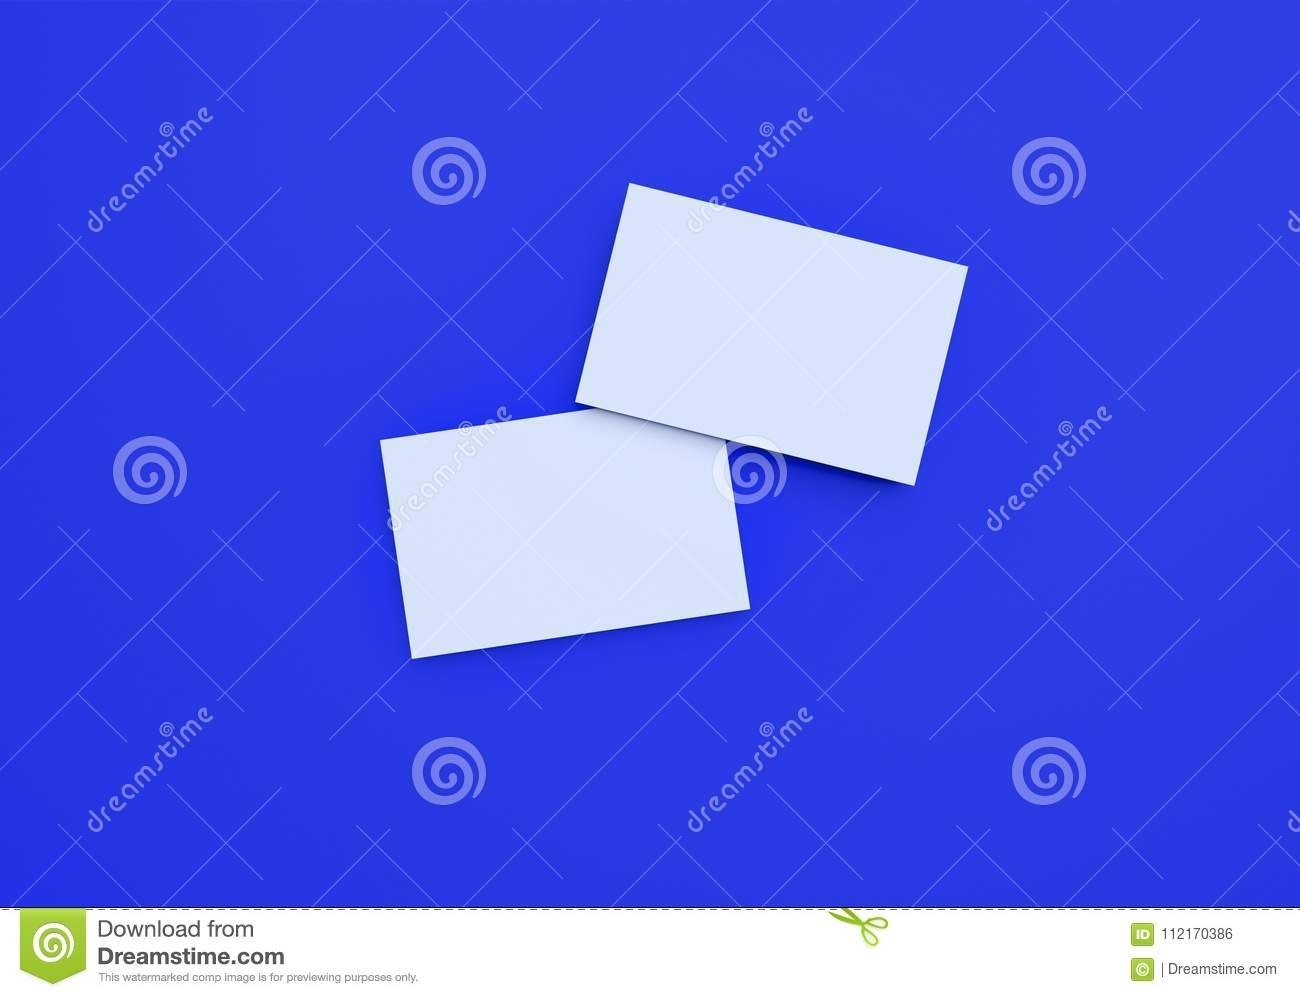 Mockup business cards on blue background stock illustration download mockup business cards on blue background stock illustration illustration of concept card colourmoves